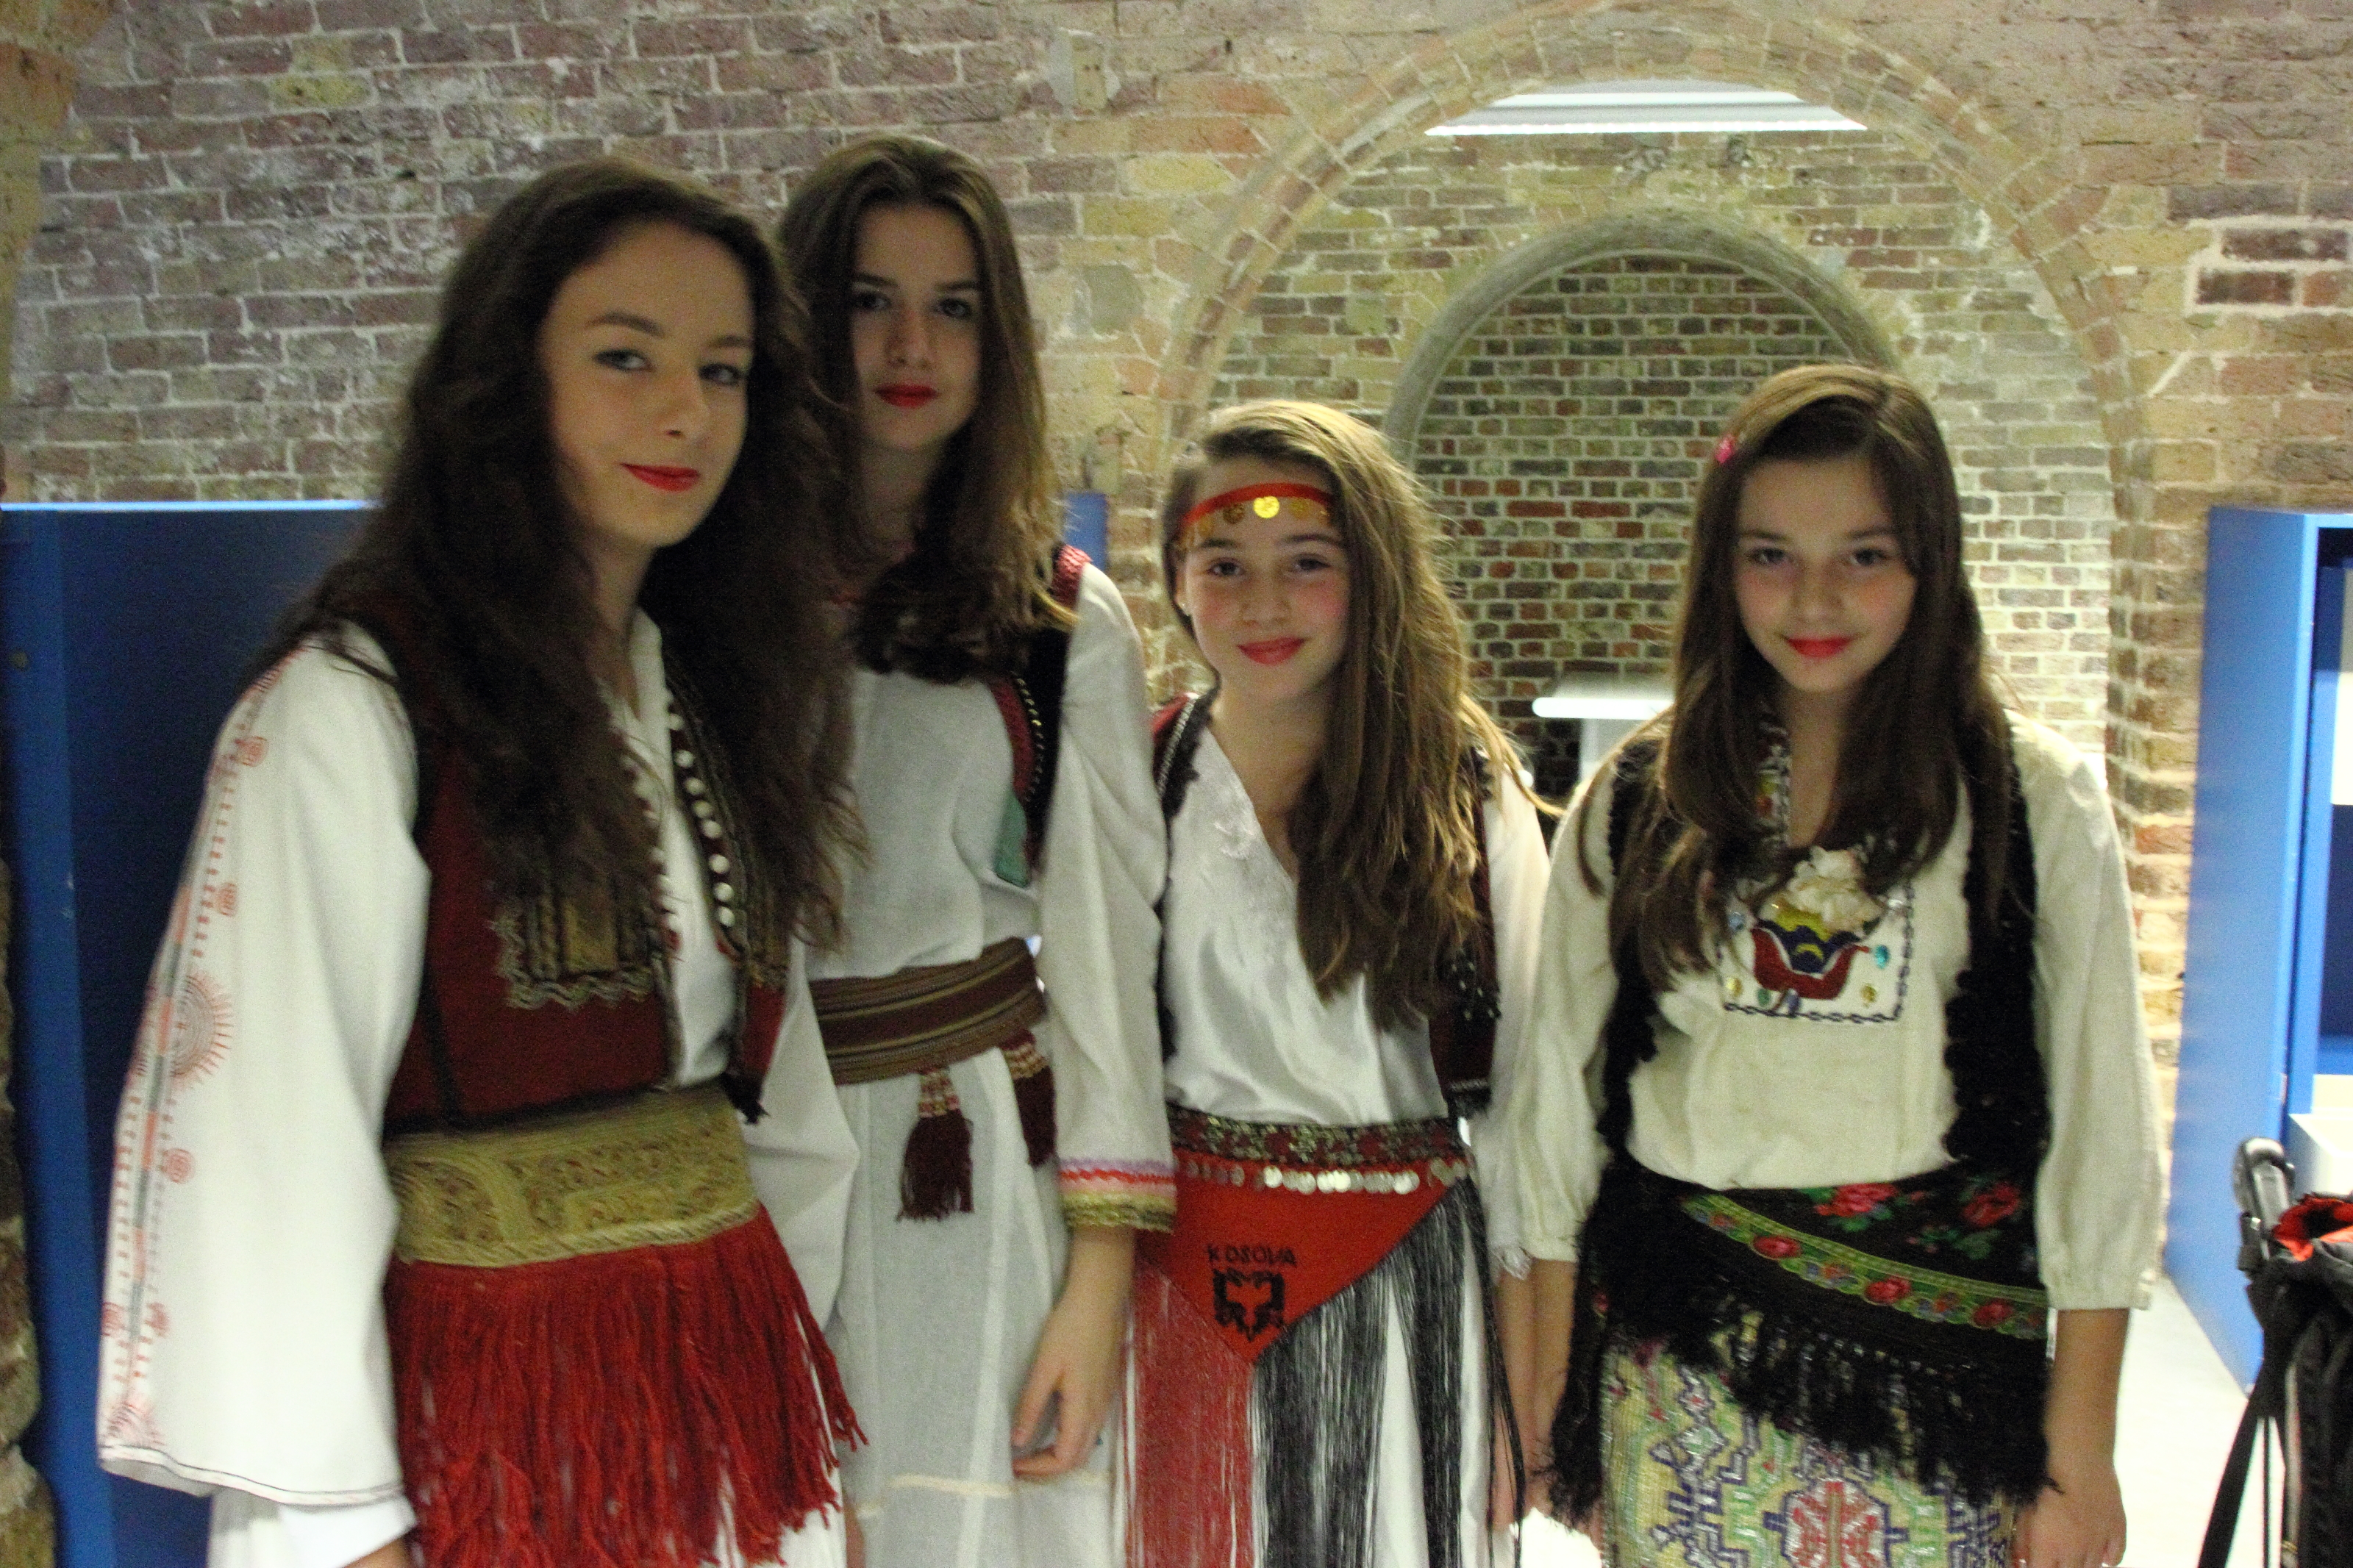 Albanian traditional costumes in London, through a photograph